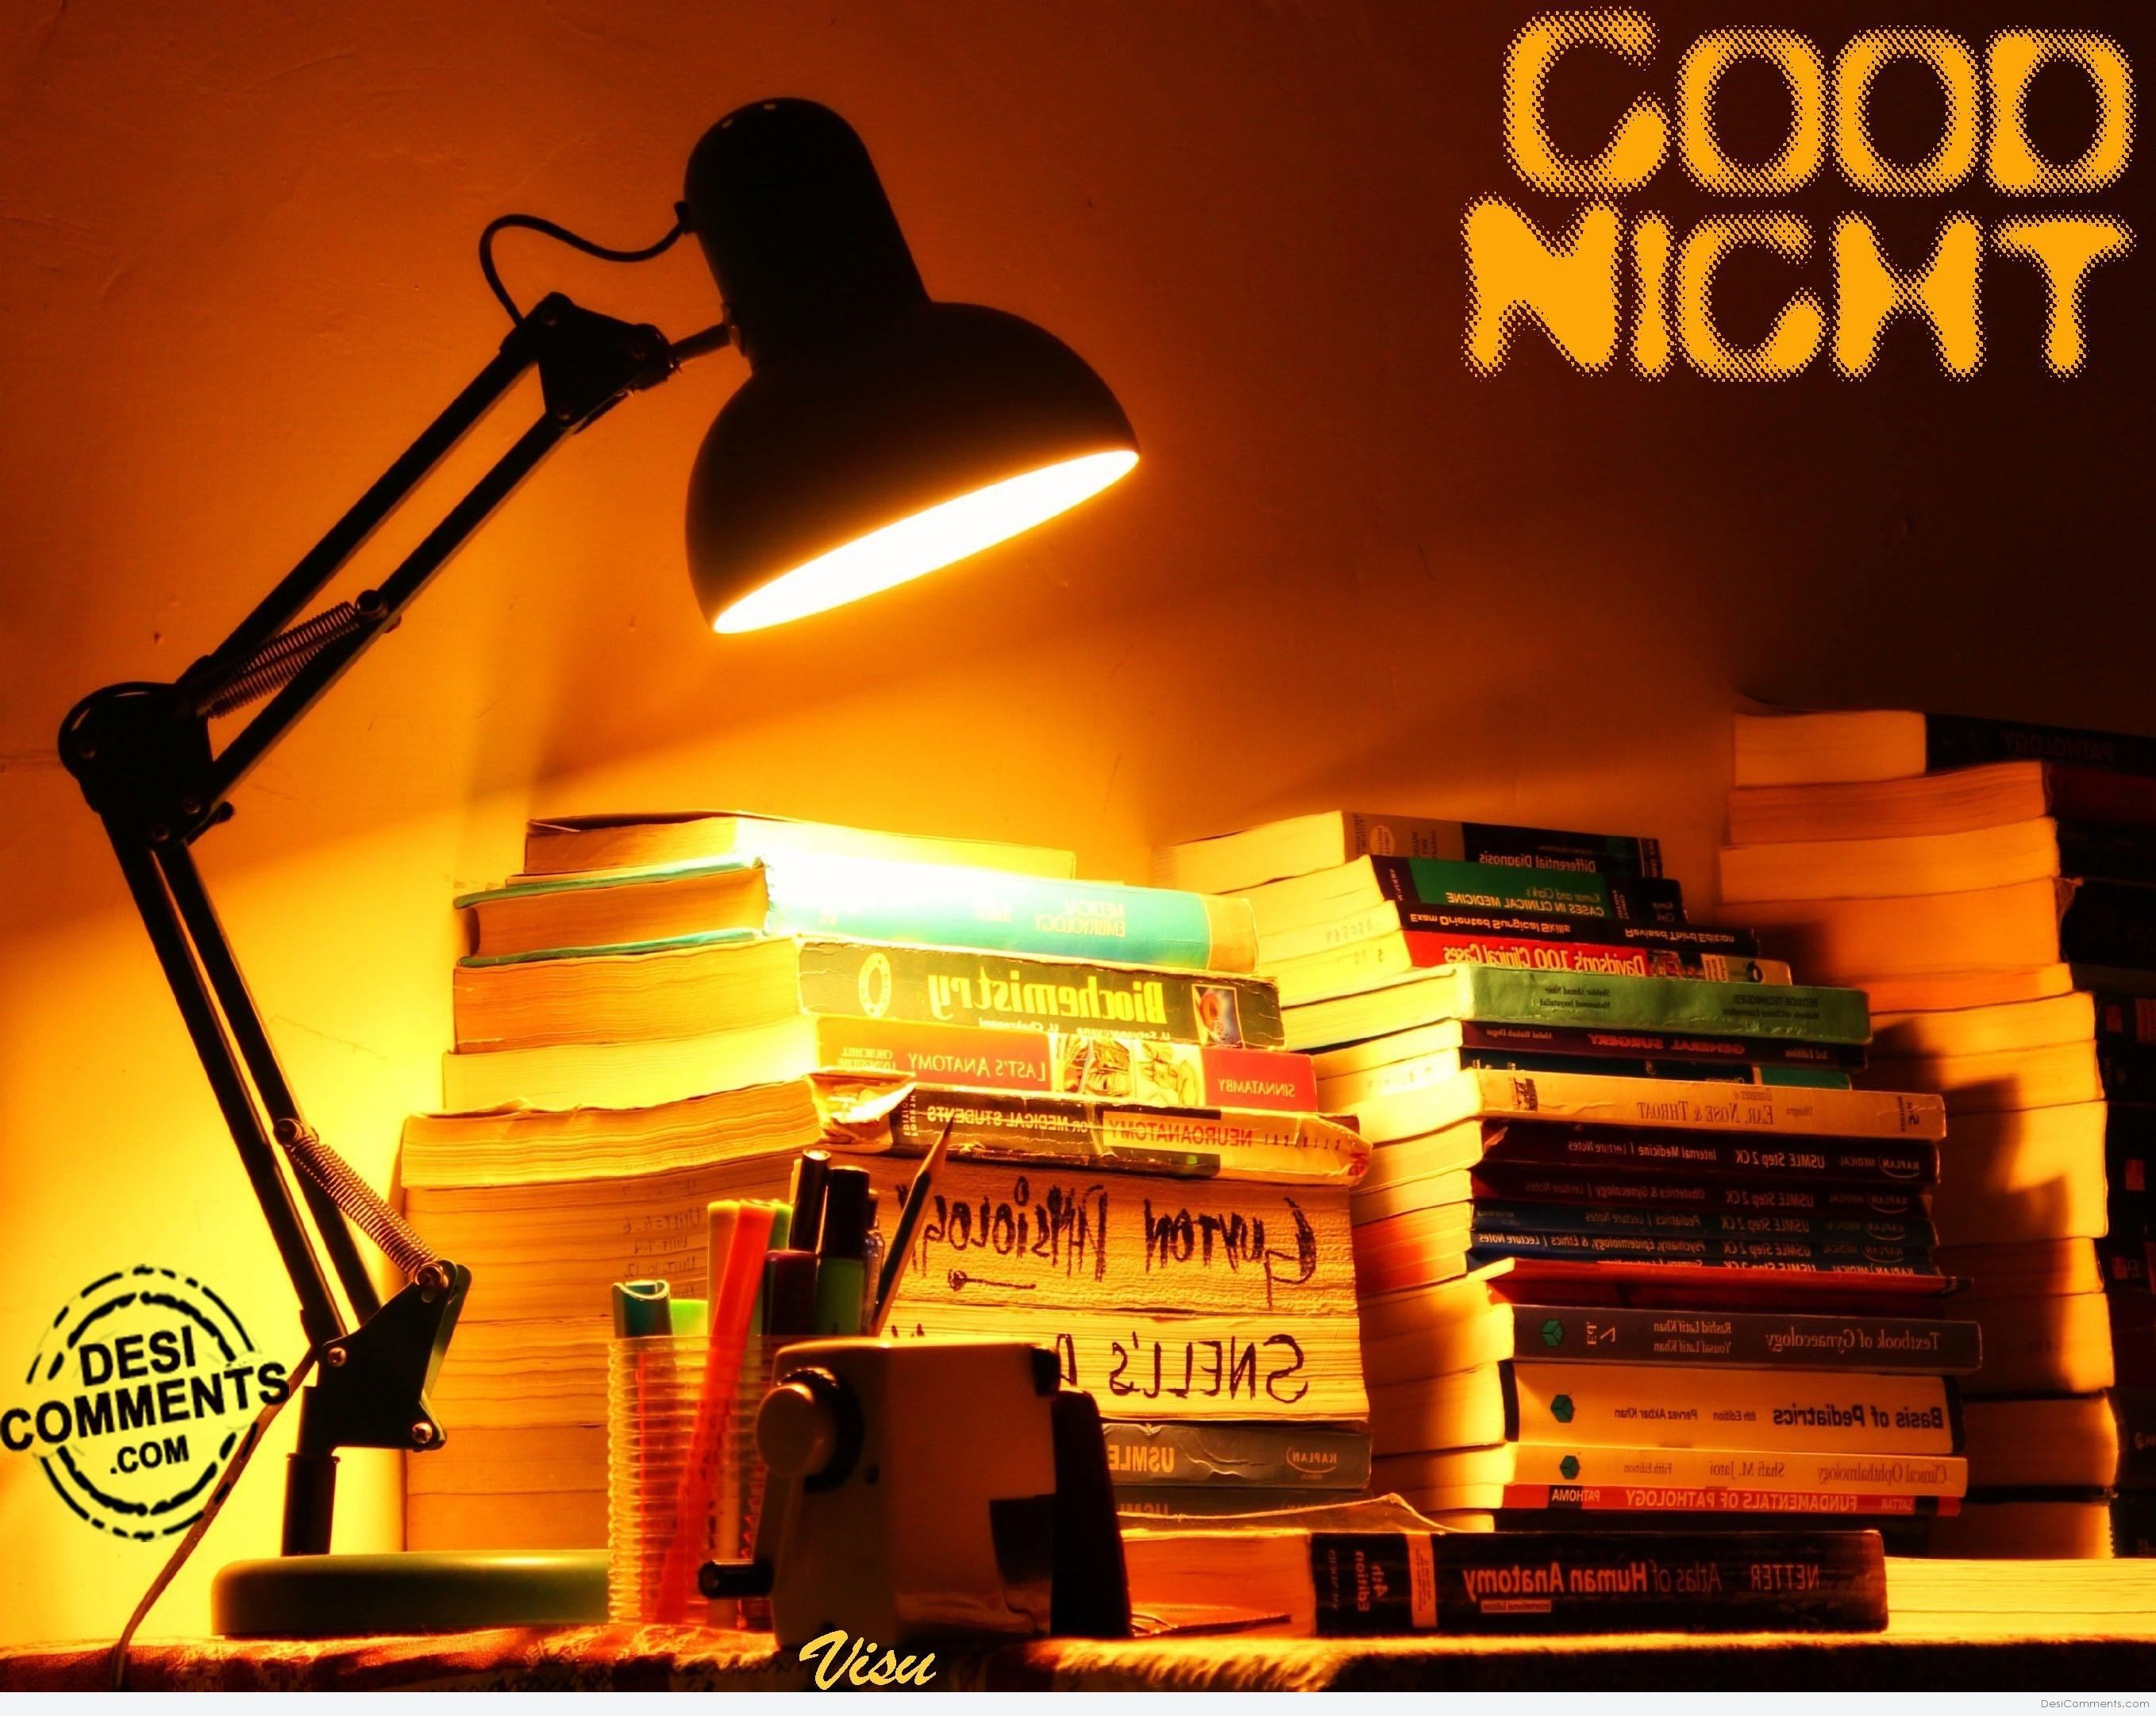 Good Night Image - DesiComments.com